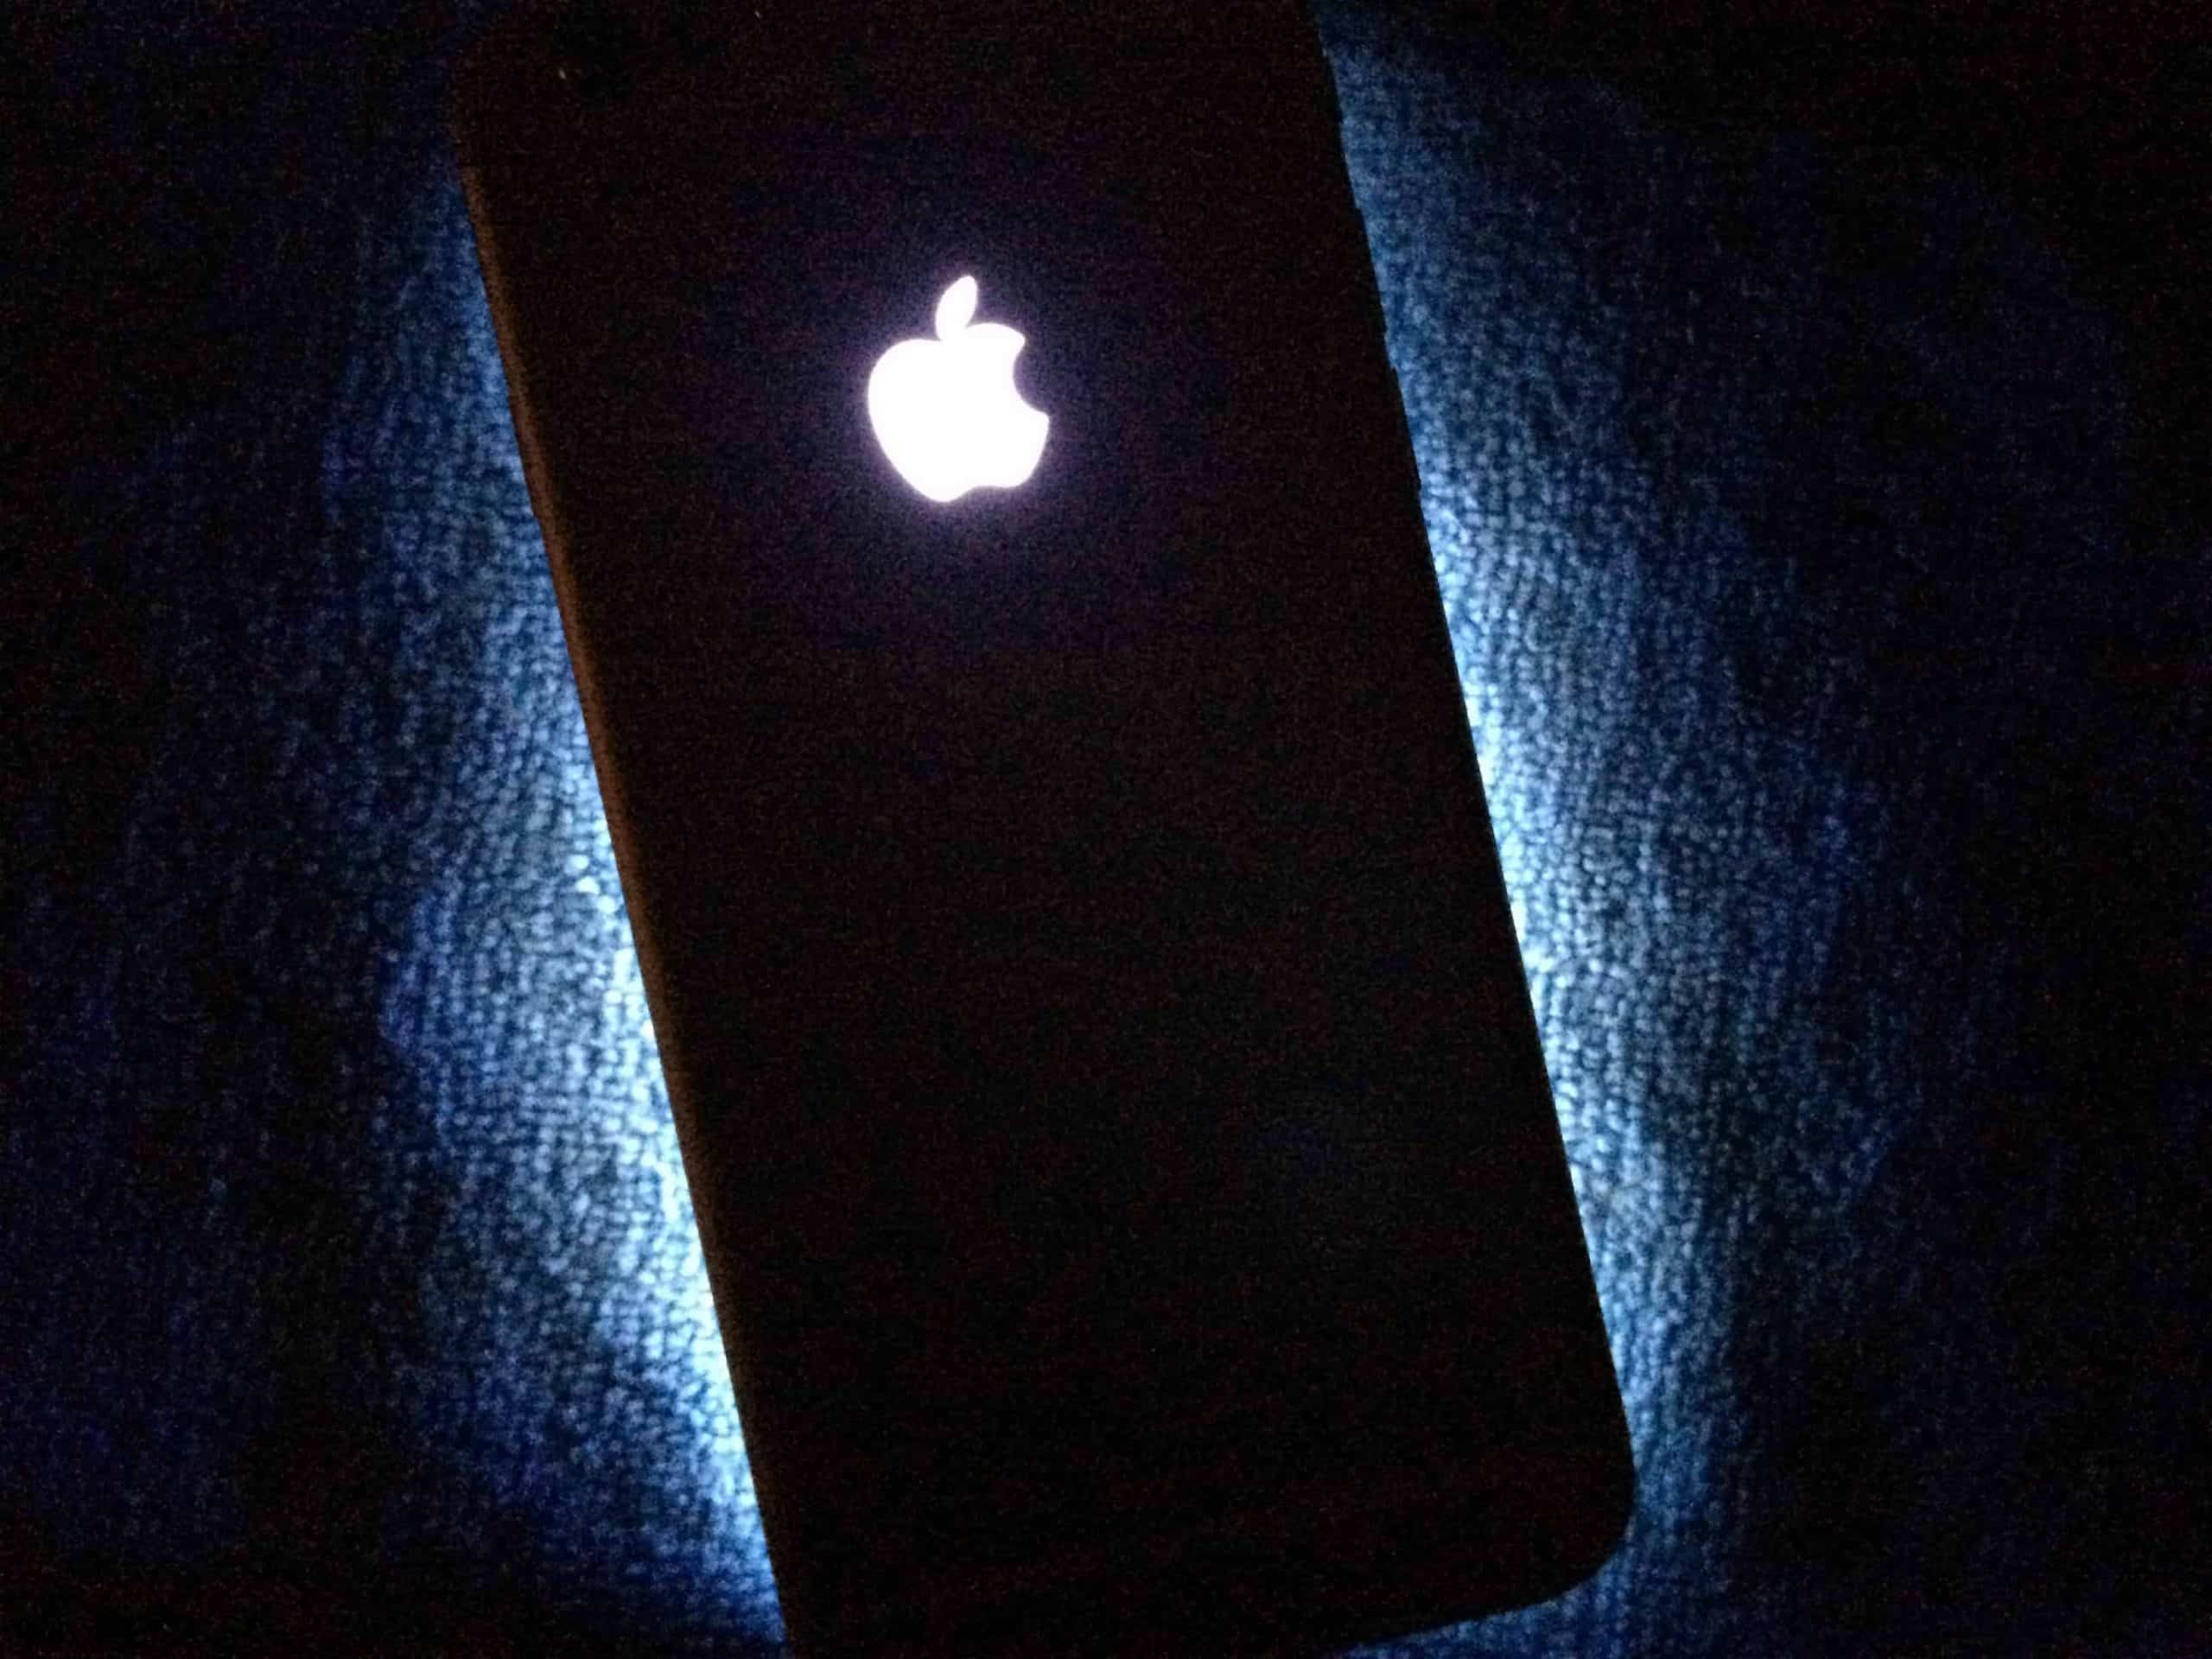 iPhones could have glowing Apple logo as notification light